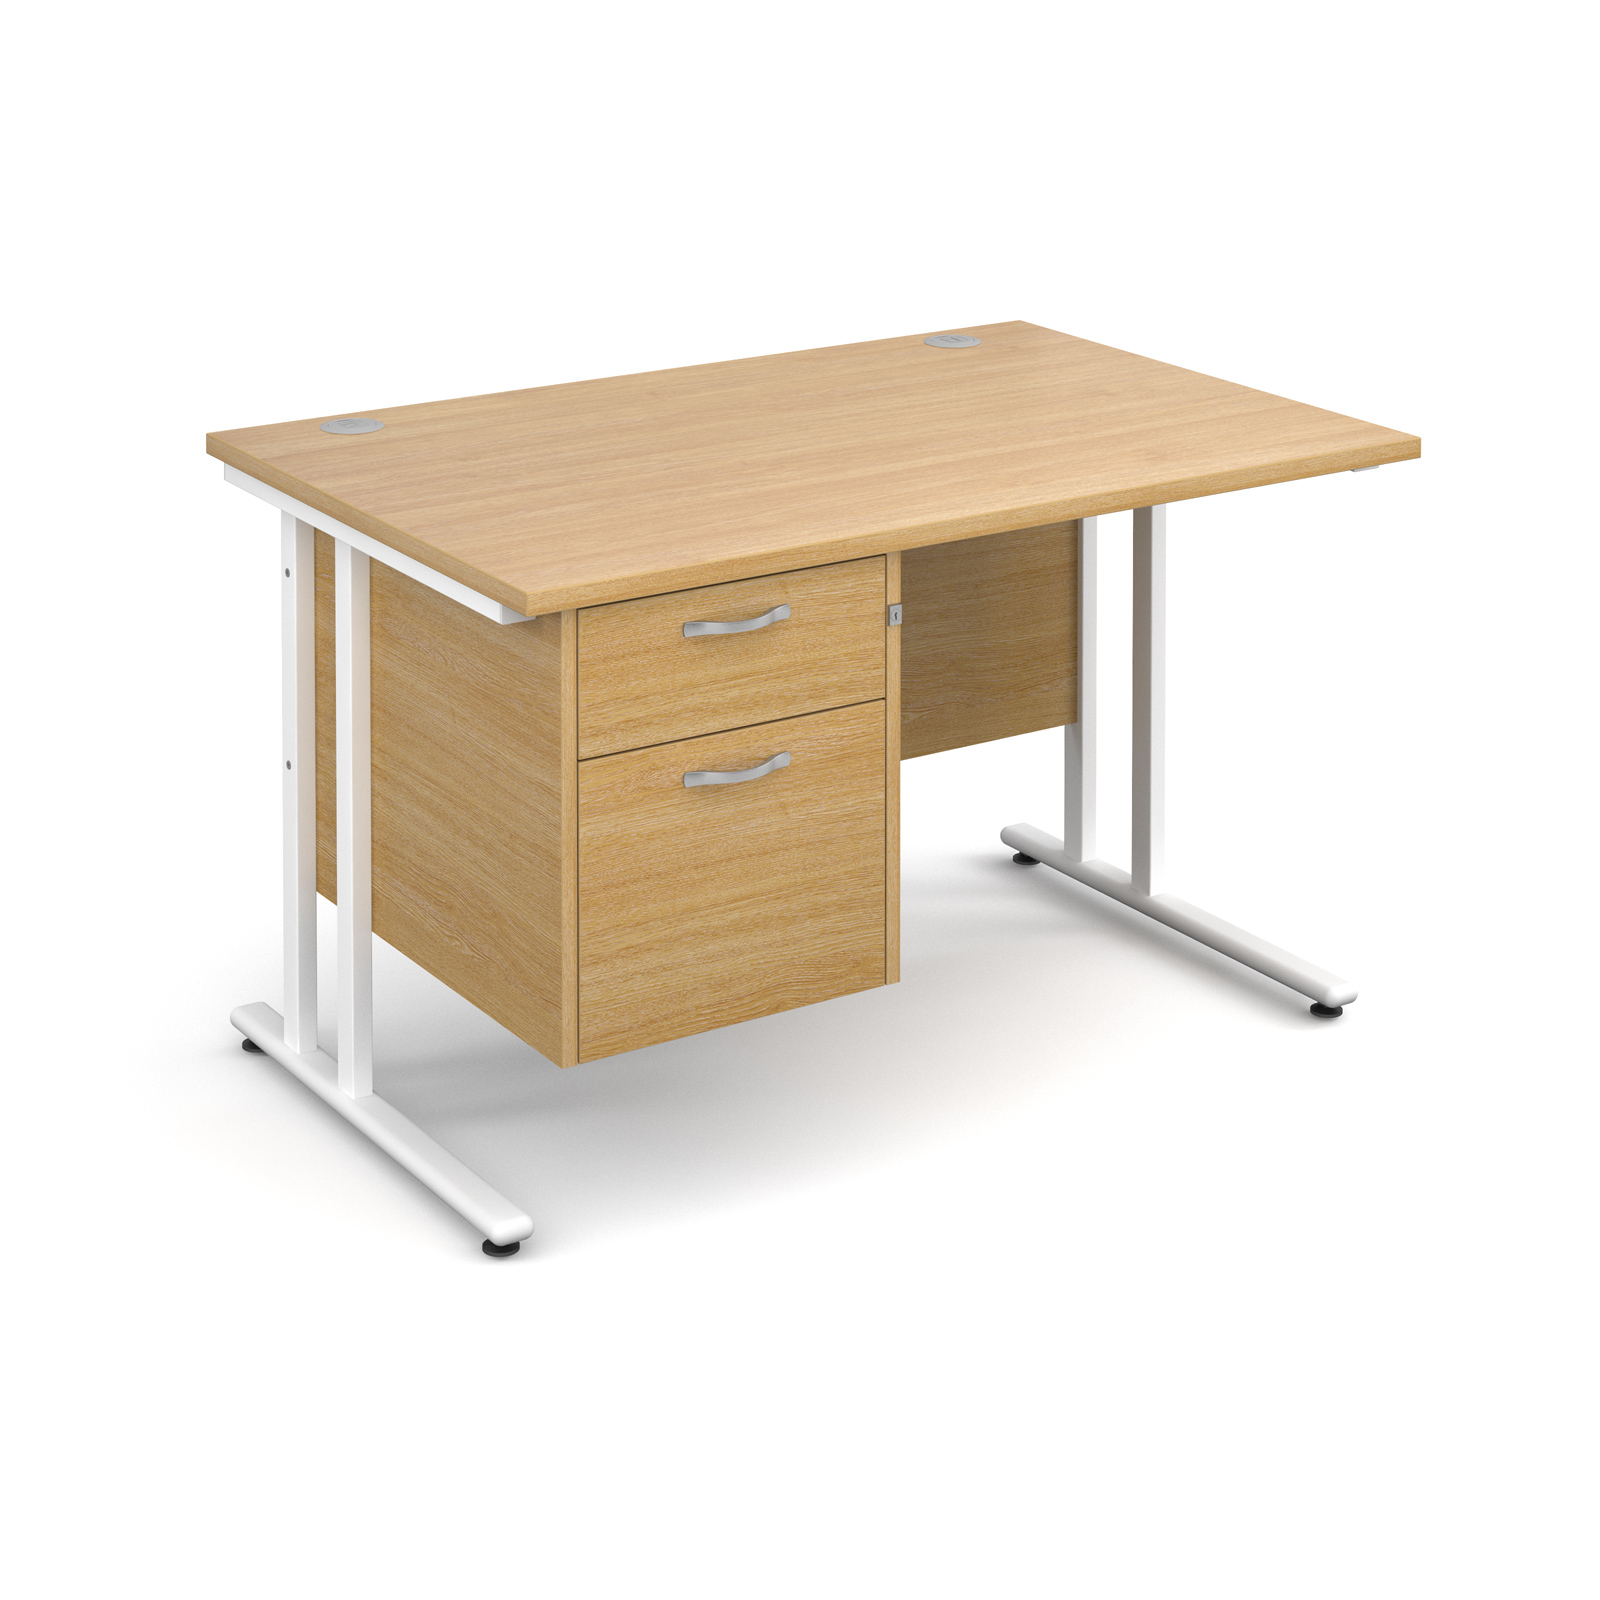 Dams Maestro 25 WL Oak Desk | Straight Single Pedestal